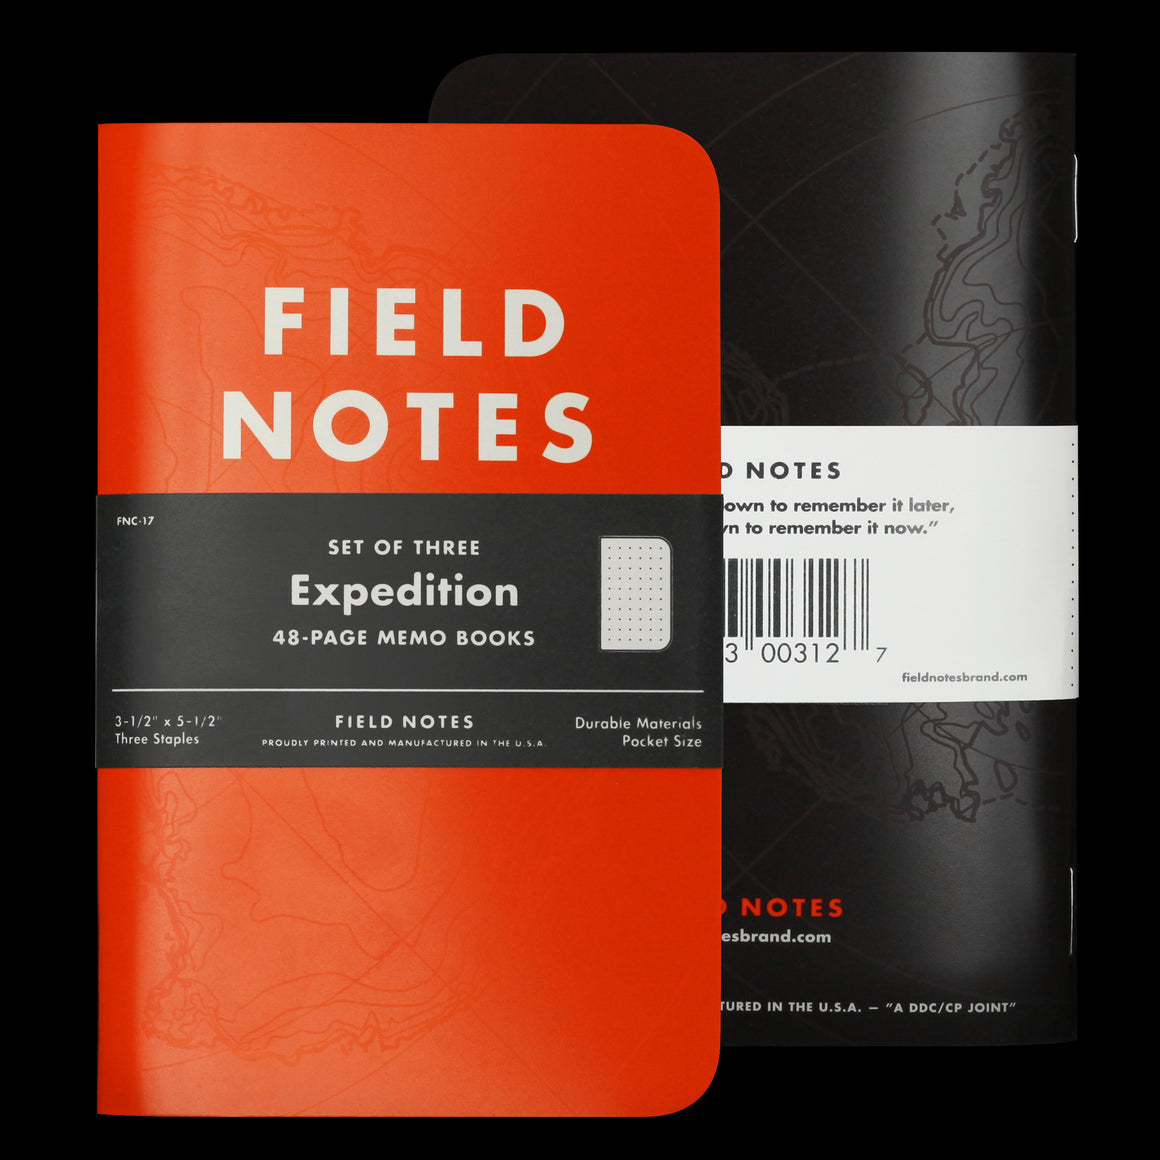 Field Notes Pocket Notebooks Expedition Edition